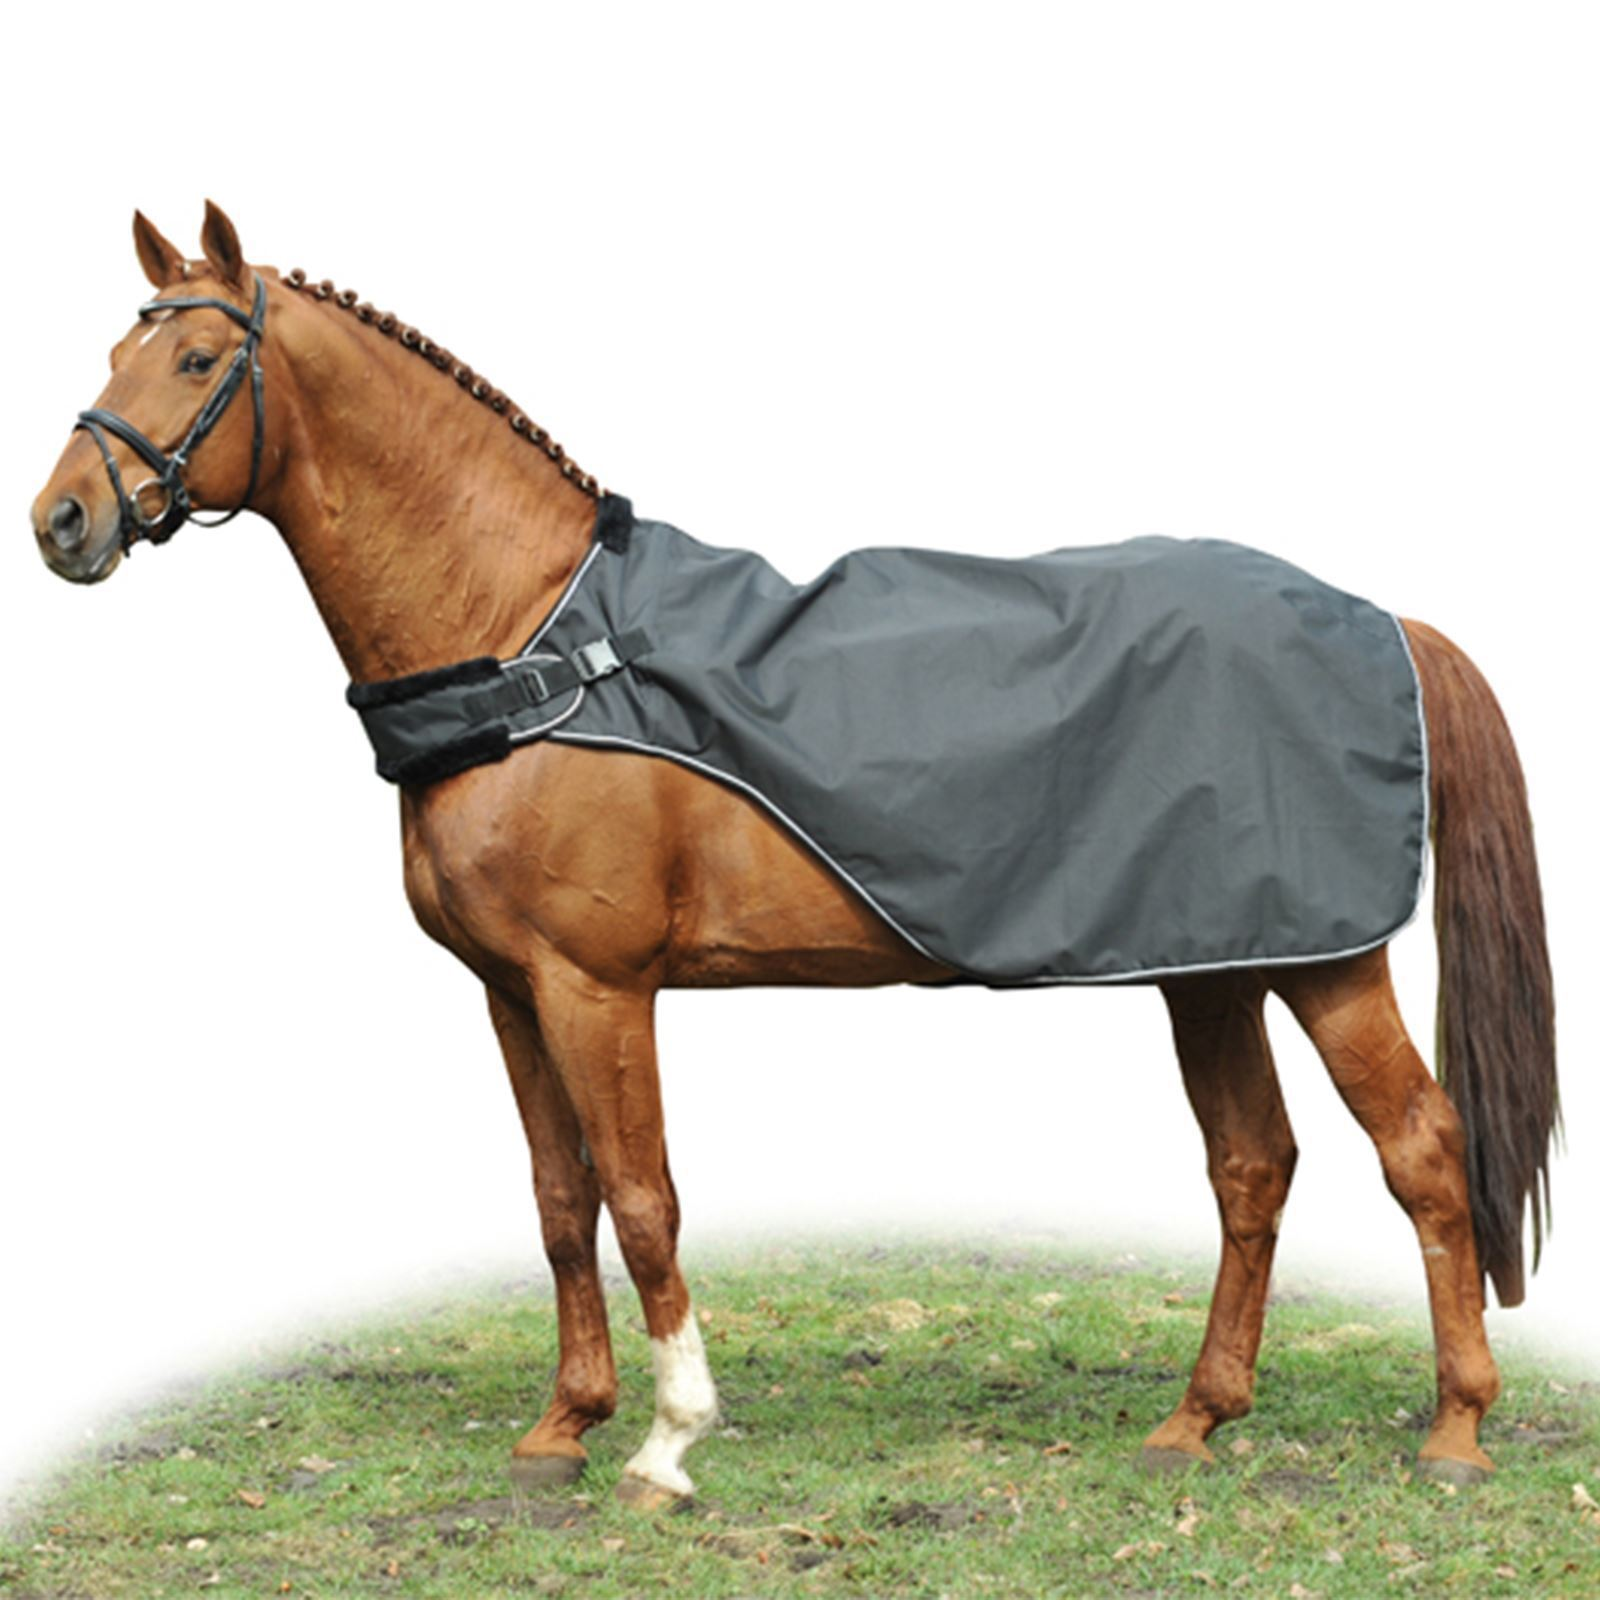 Hkm horse  walker Blanket carvis Fleece Waterproof Durable Predection  affordable